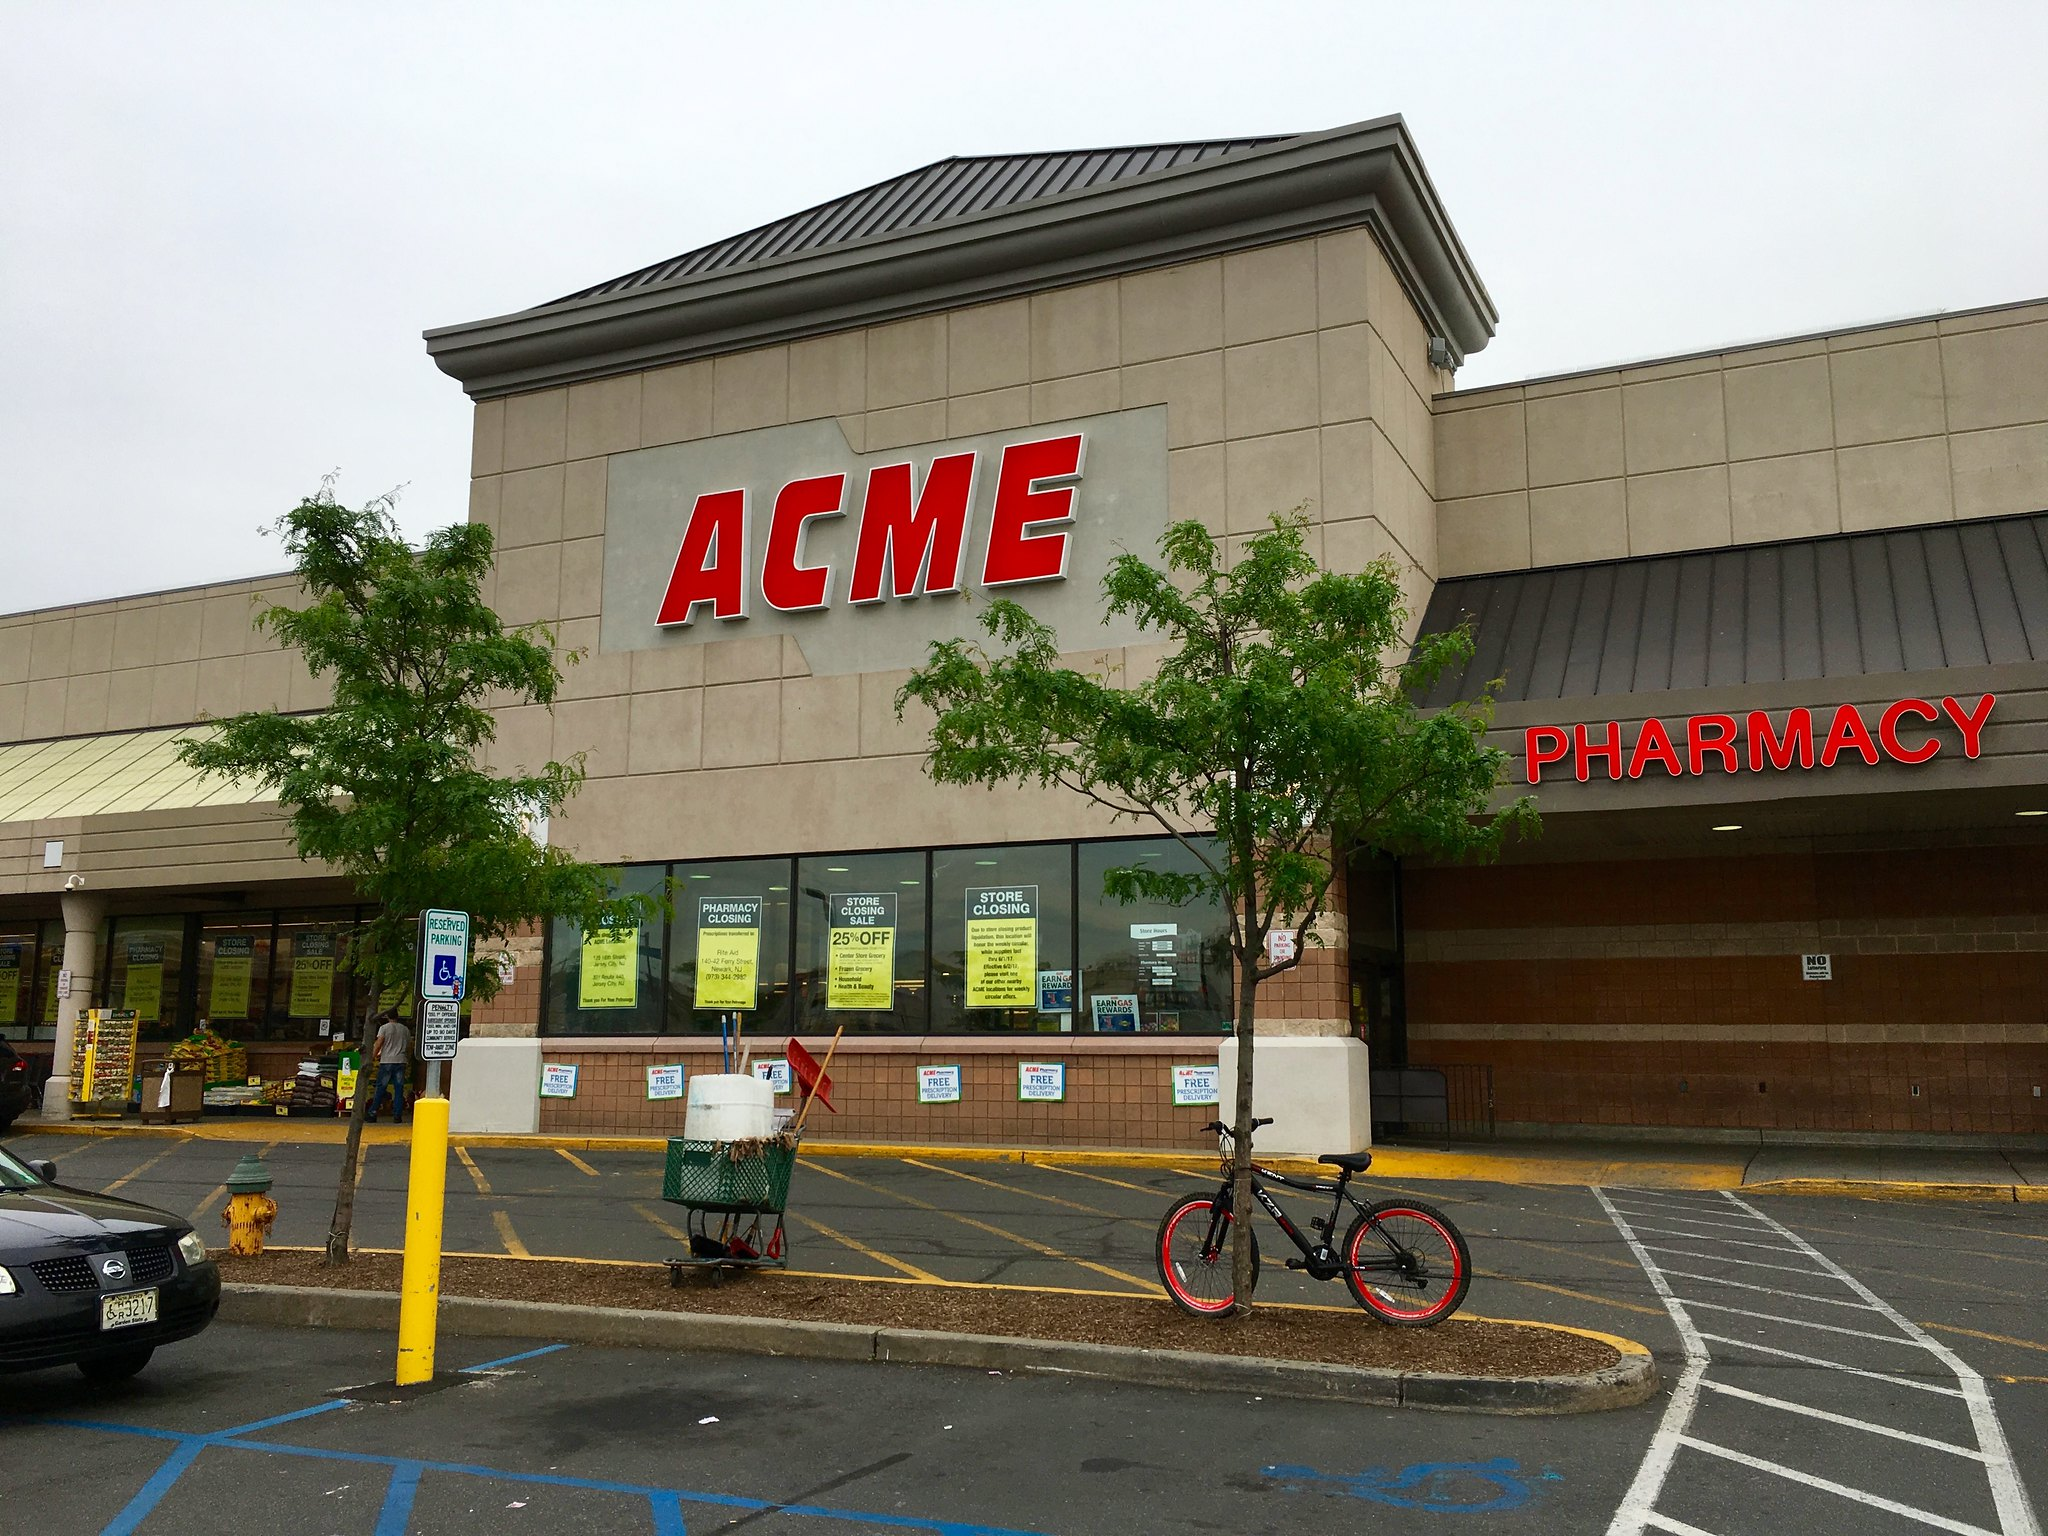 Acme (Closing) / Pathmark, Ironbound Neighborhood, Newark, NJ